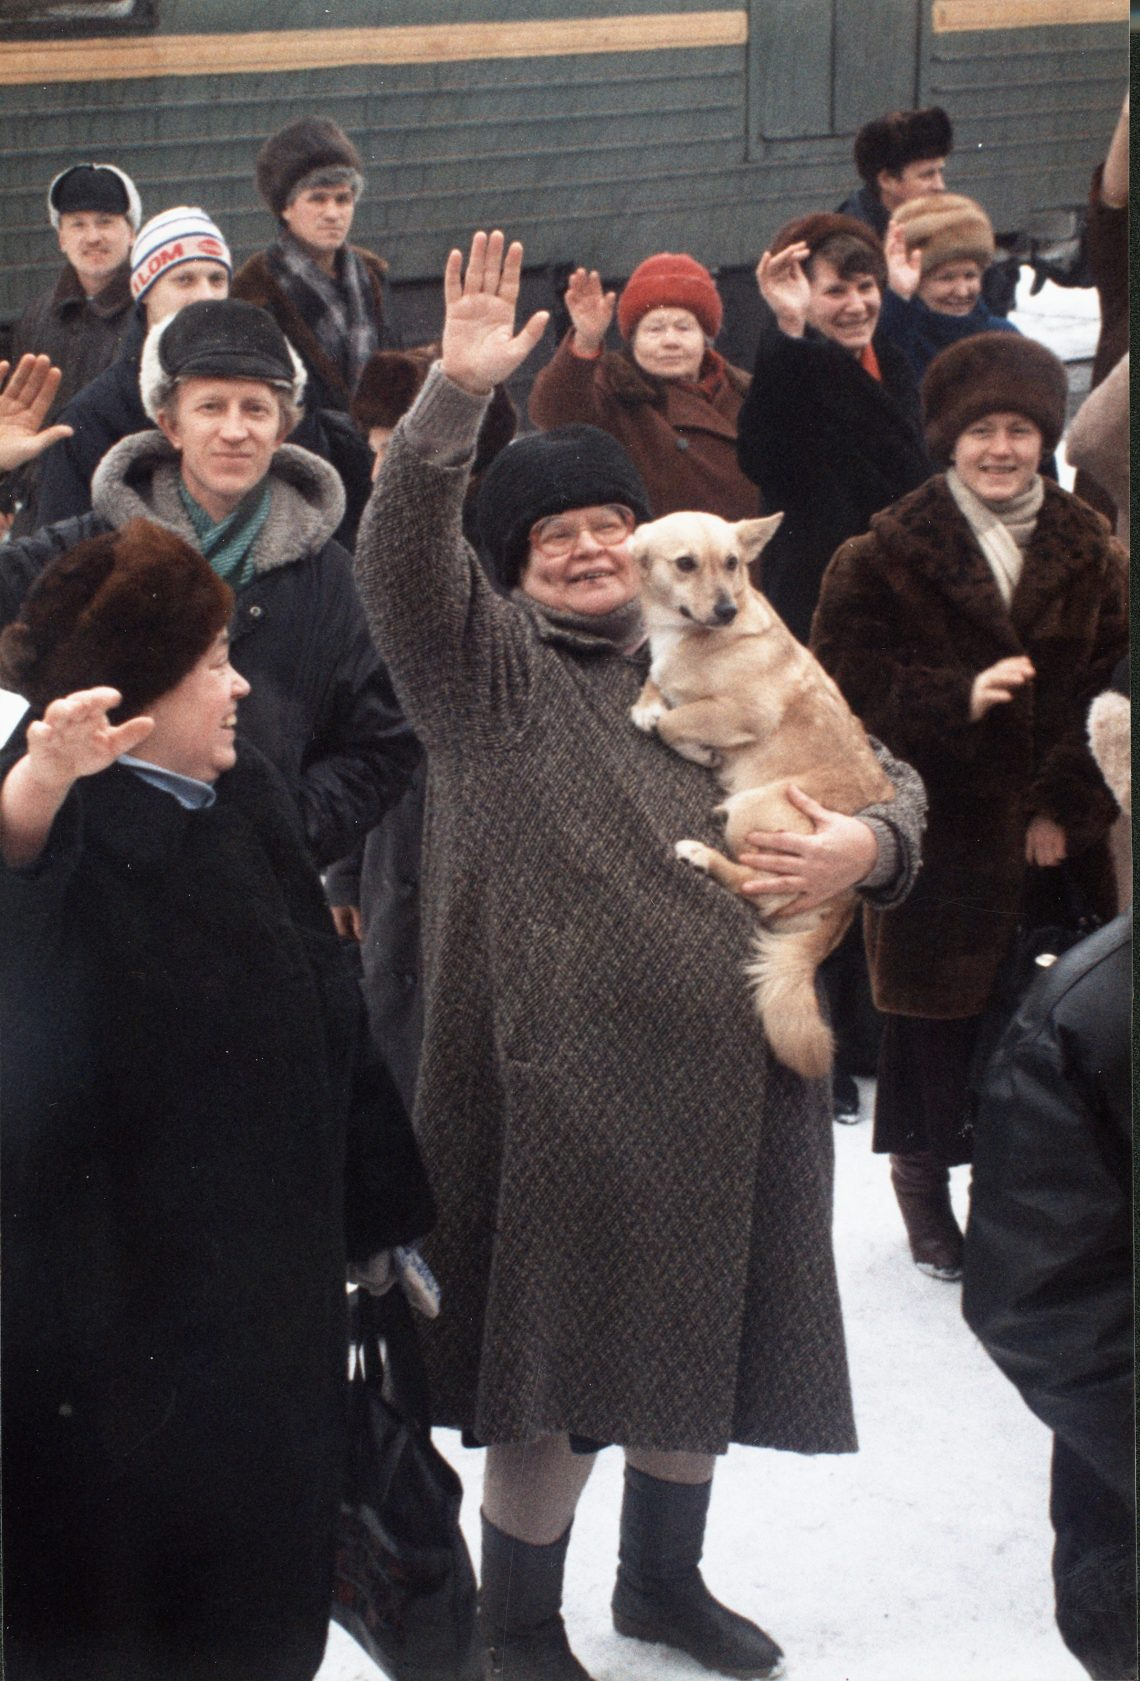 TSHE crowd with dog